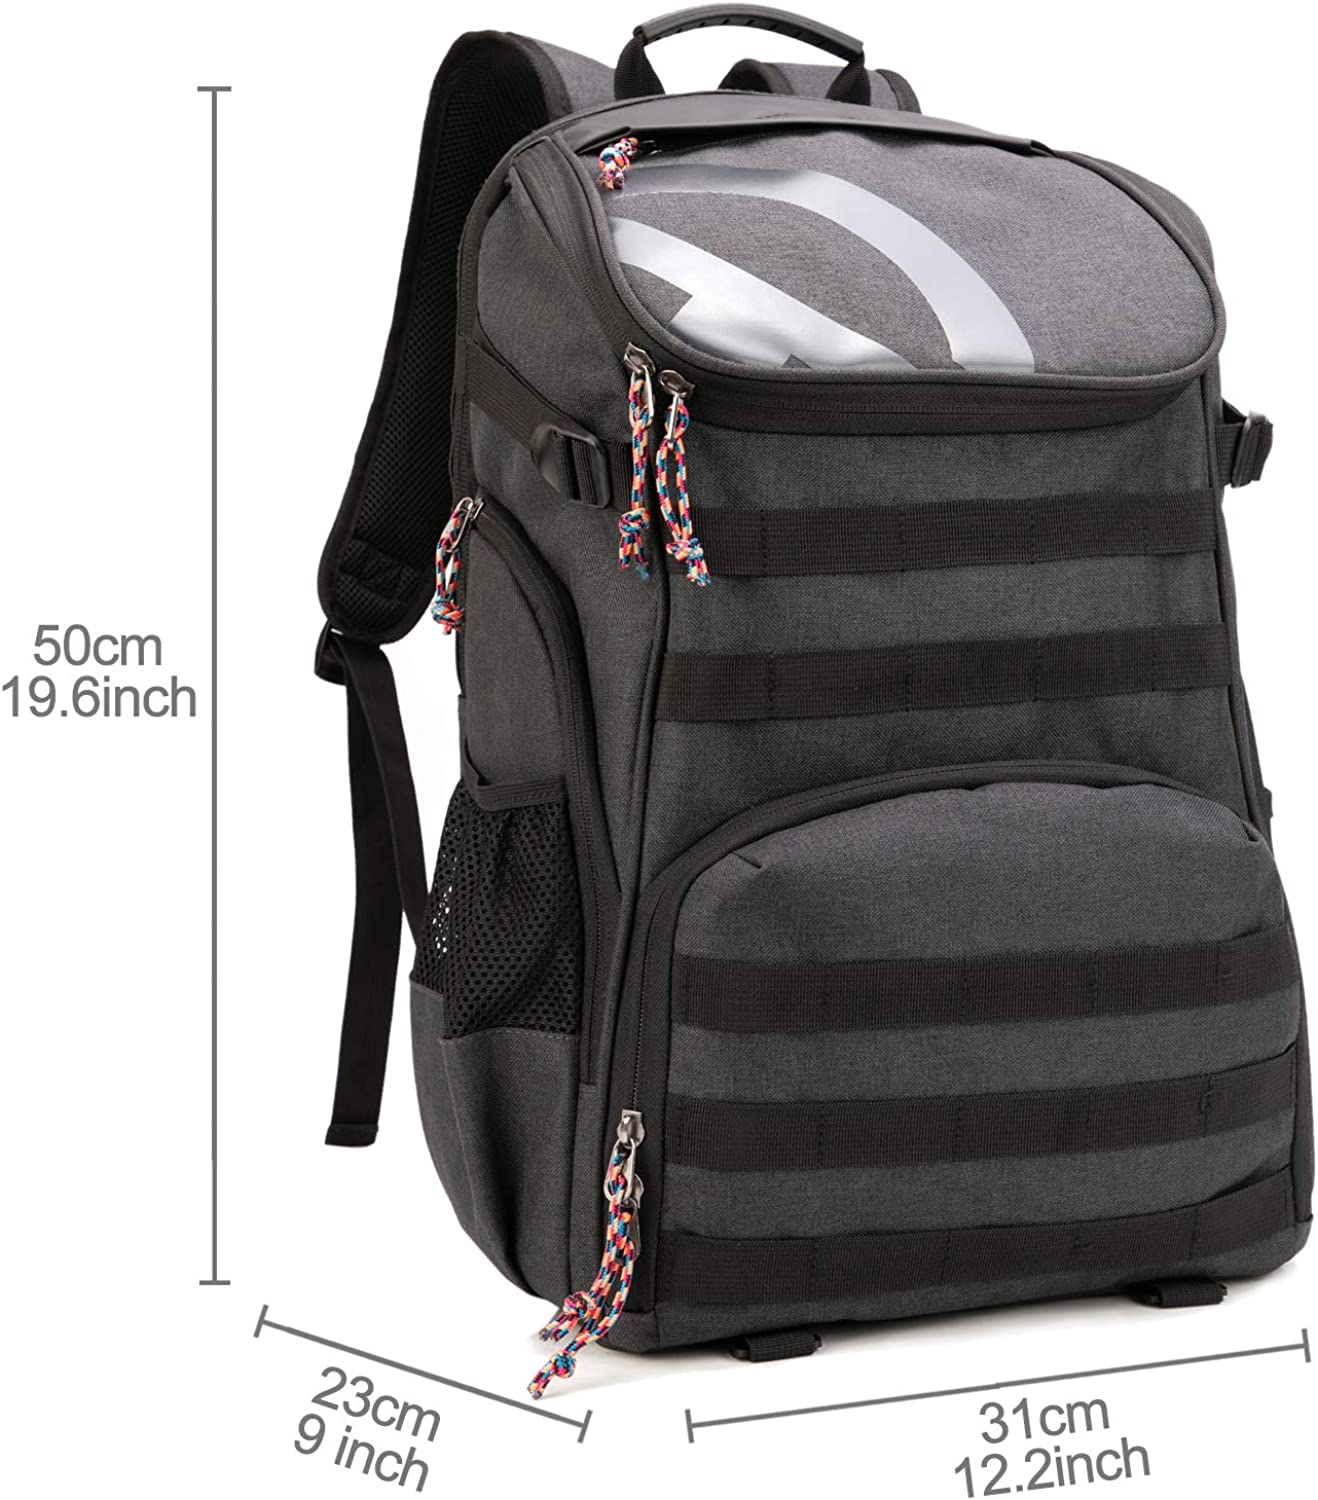 TRAILKICKER 35L Soccer Backpack with Ball Compartment 17 Laptop Compartment and Bonus Attachable Laundry//Shoe Bag Football /& Volleyball Outdoor Sports Backpack Gym Bag for Basketball Soccer